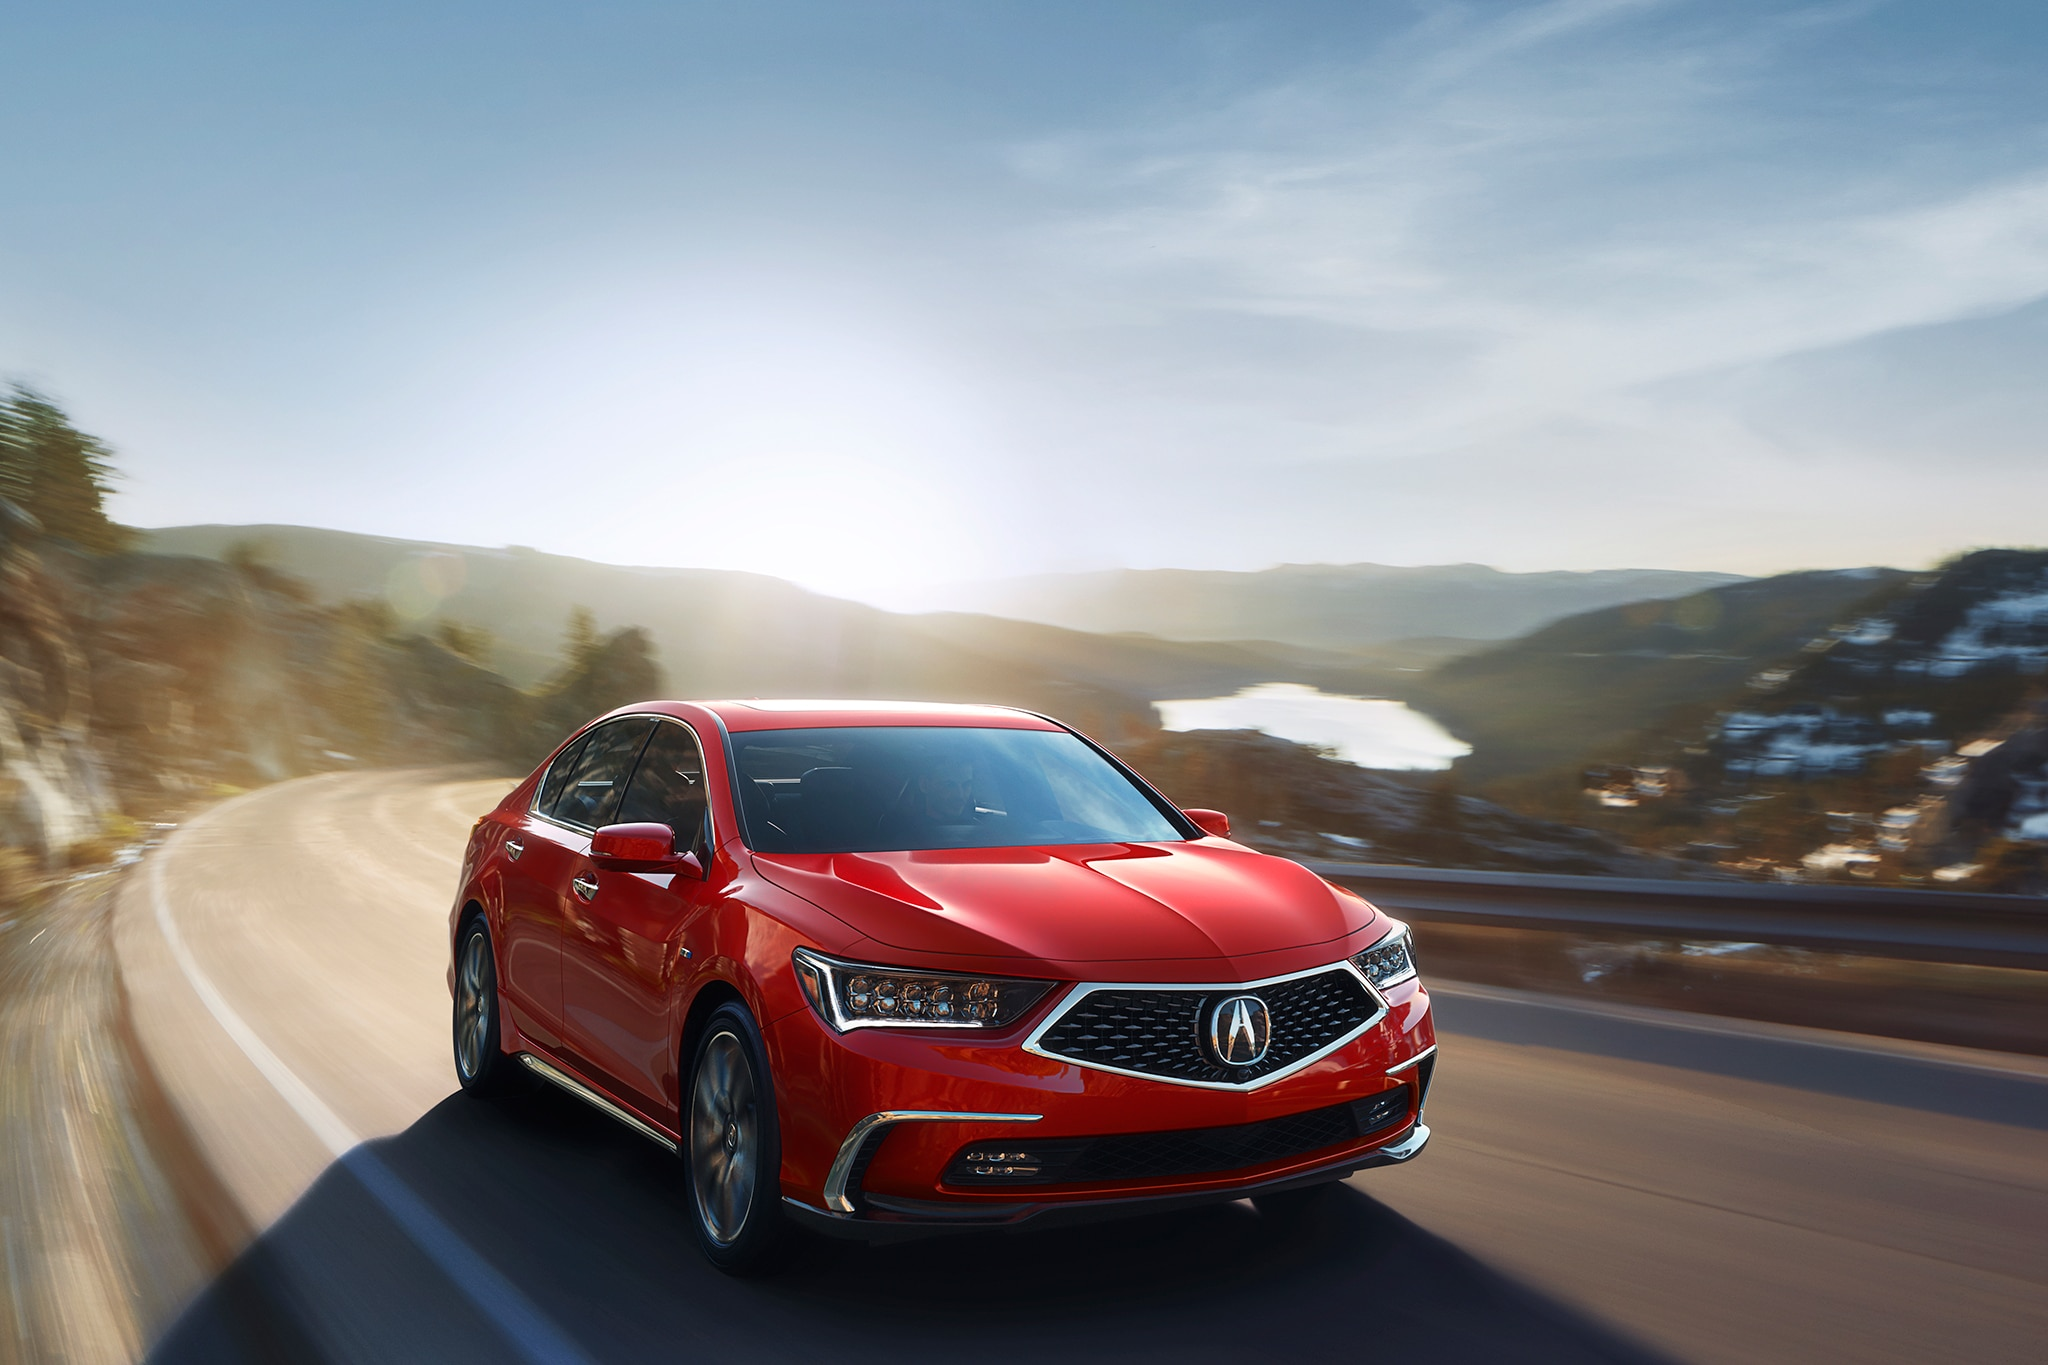 Acura RLX Arrives with New Diamond Pentagon Grille